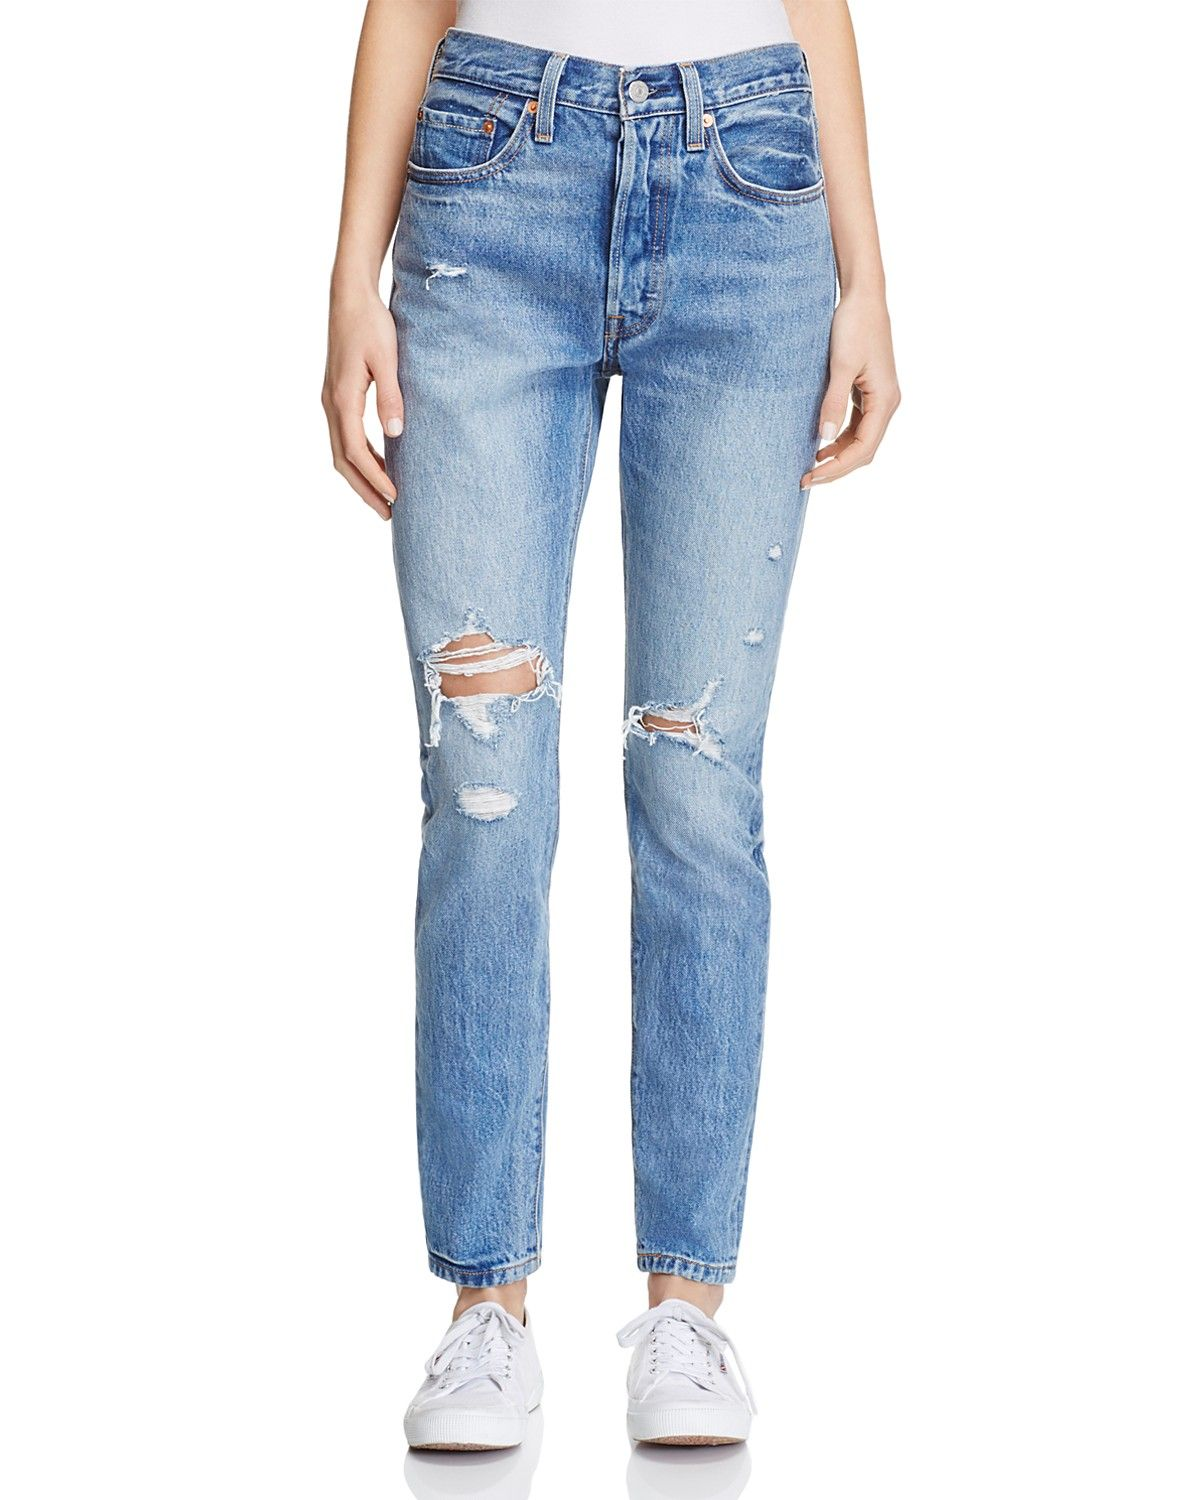 66bce97d Levi's 501® Skinny Jeans in Old Hangouts   Love The Look... Denim ...